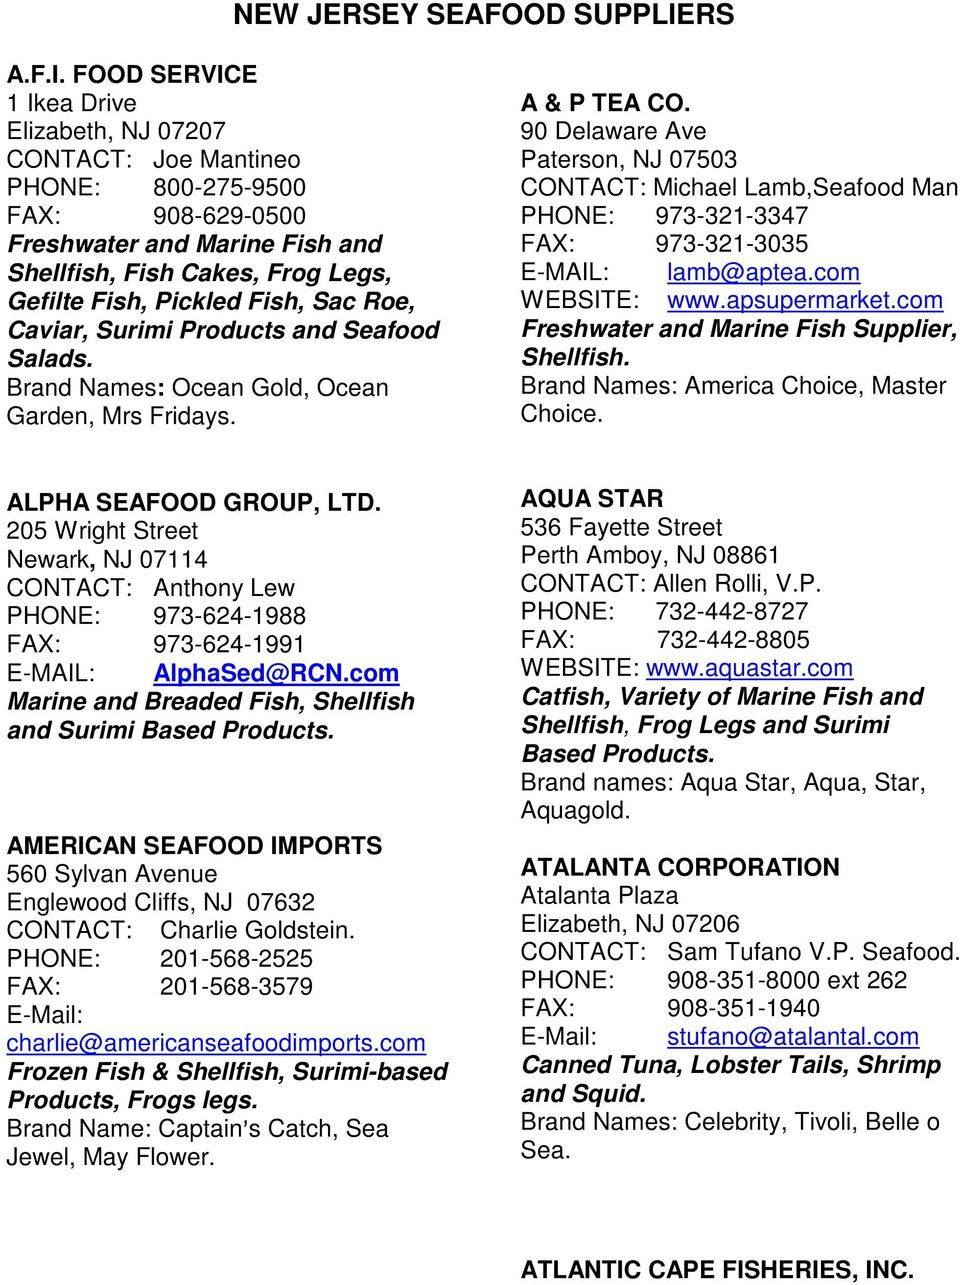 NEW JERSEY SEAFOOD SUPPLIERS - PDF